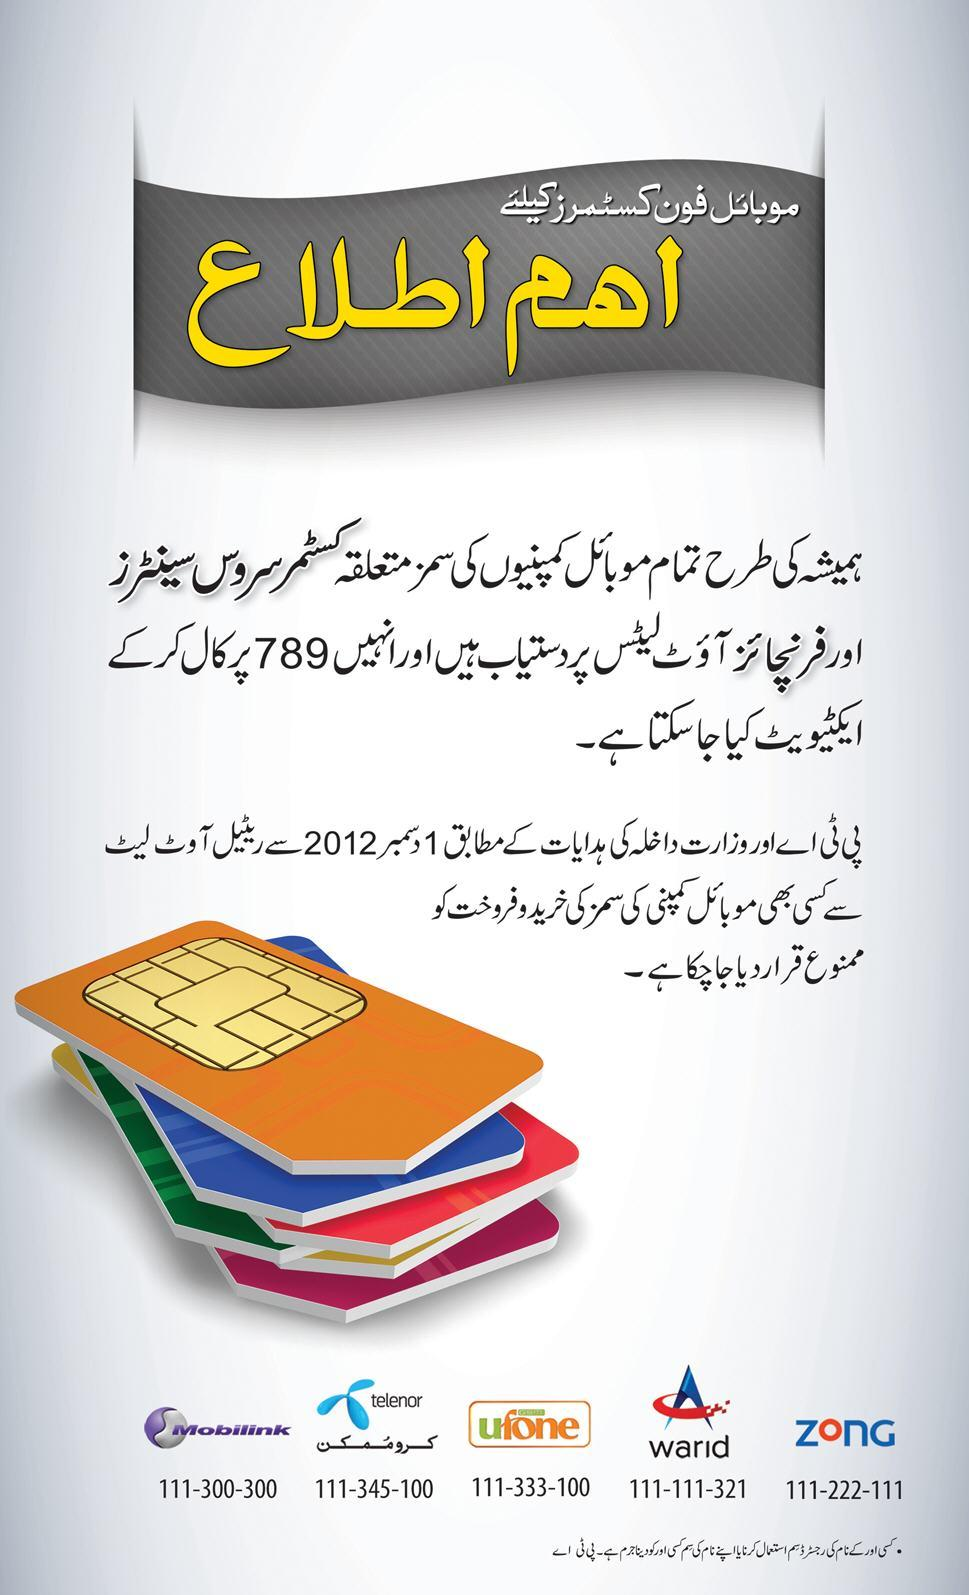 All Mobile Phone Sims Can BE Activated by 789 Free and Available at Customer Centers